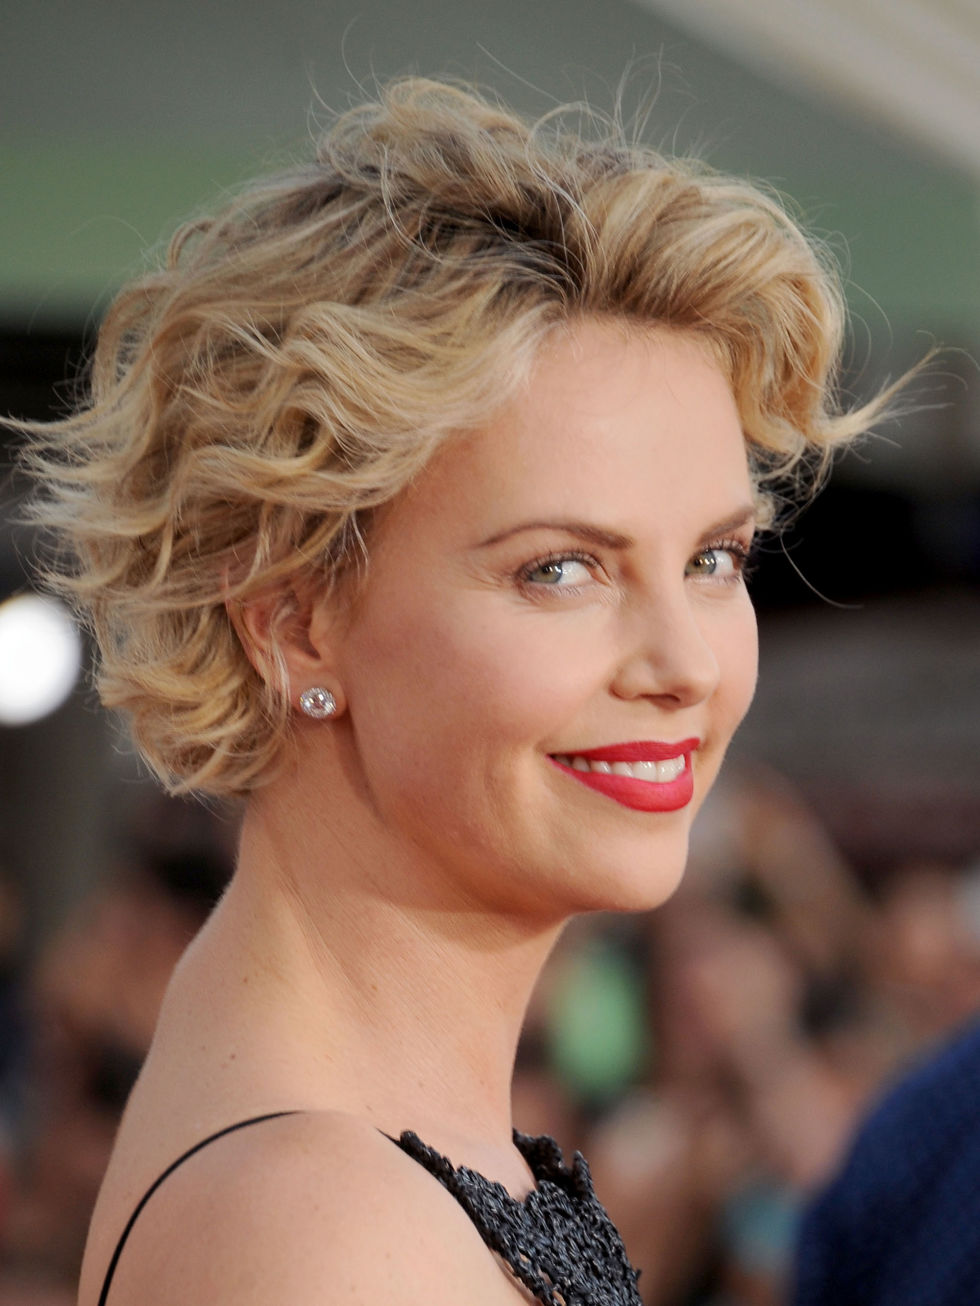 10 Myths About Having Short Hair Fact Or Fiction